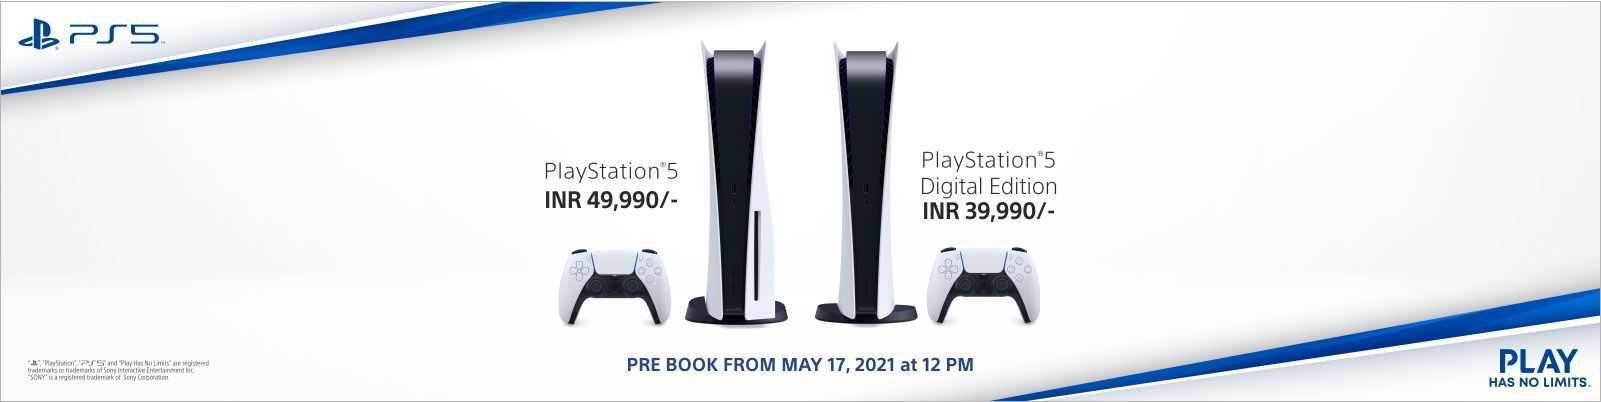 Sony PS5 Restock: Pre-Booking to Start from May 17 on Amazon, Flipkart & Sony Center